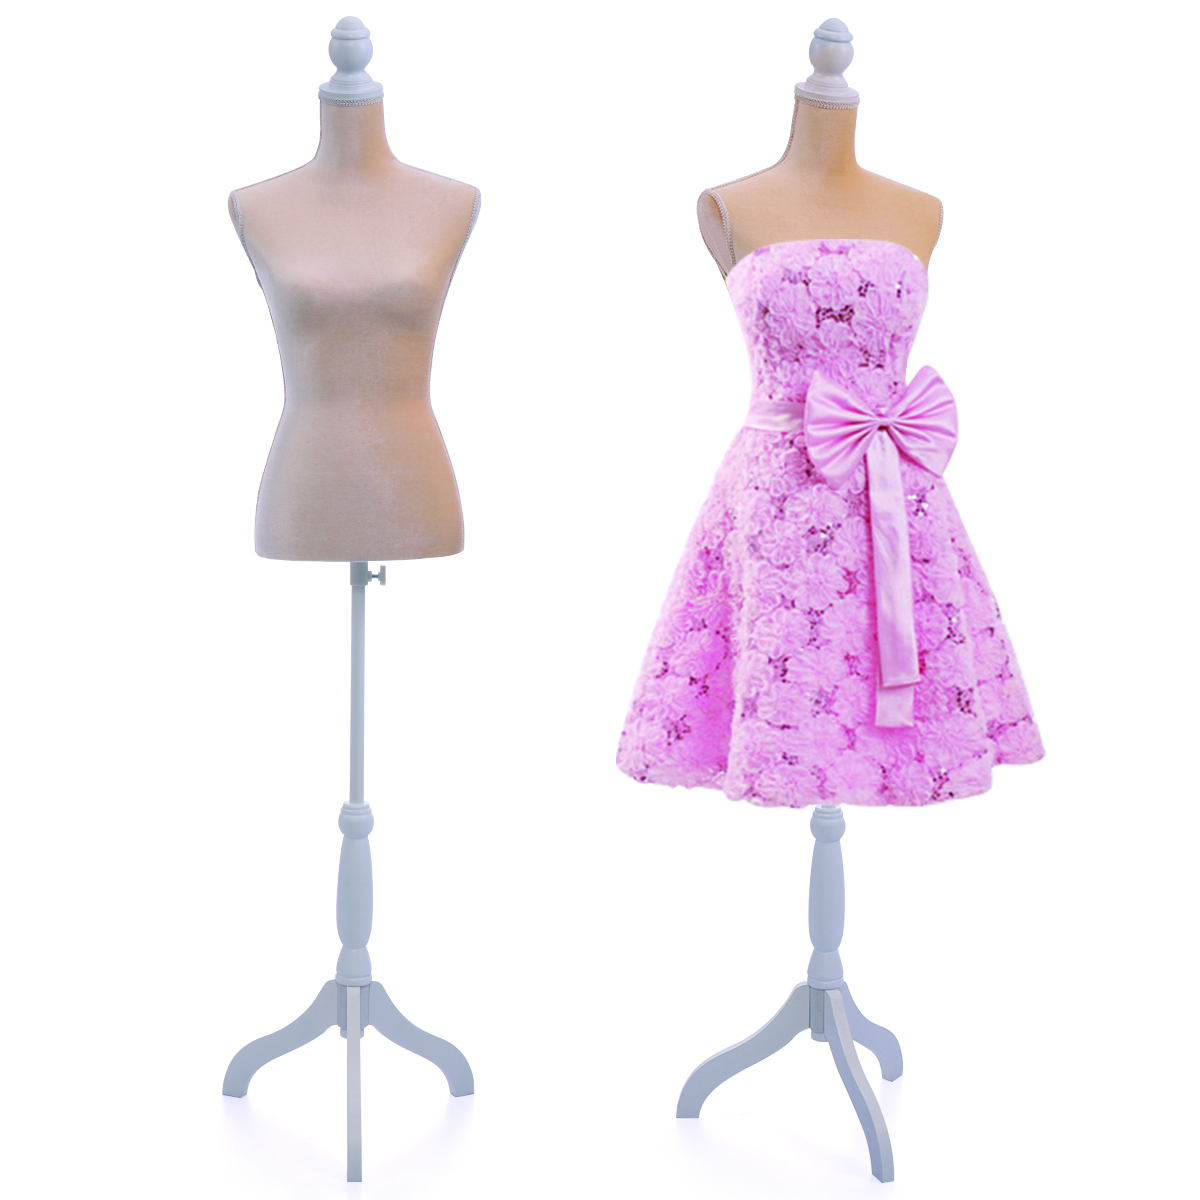 Jaxpety Female Canvas Mannequin Torso Dress Form Clothing Display w/ White Tripod Stand